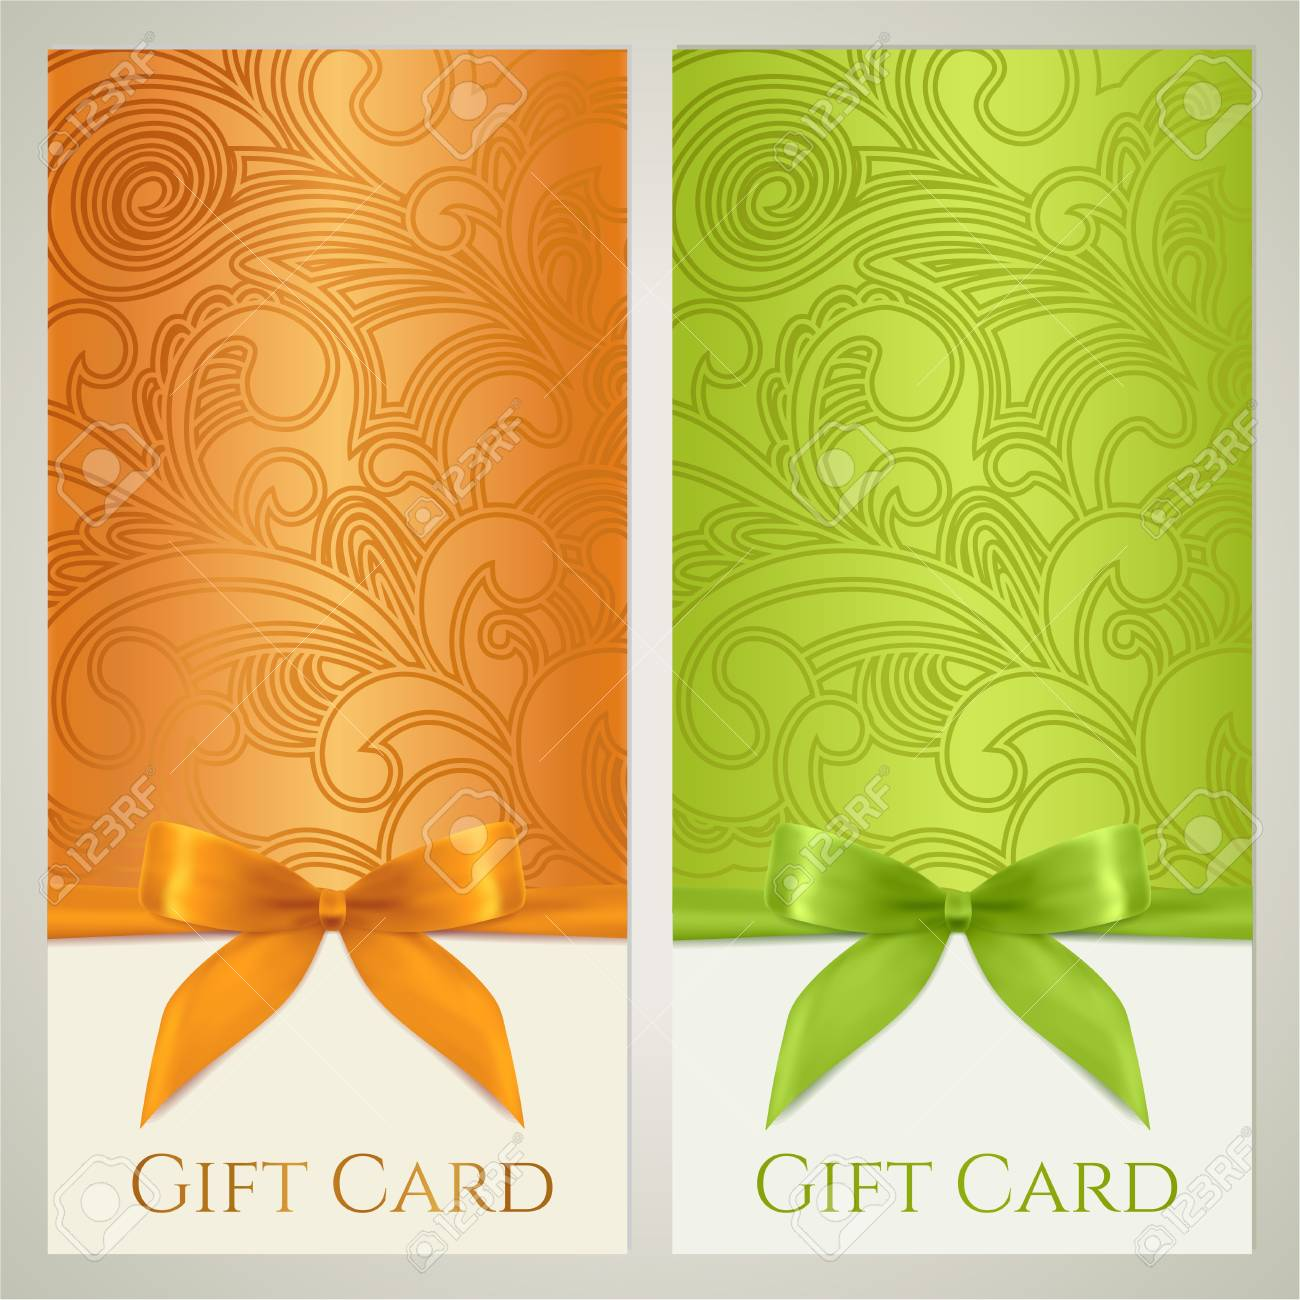 Gift Certificate Gift Card Voucher Coupon Template With Floral – Voucher Card Template